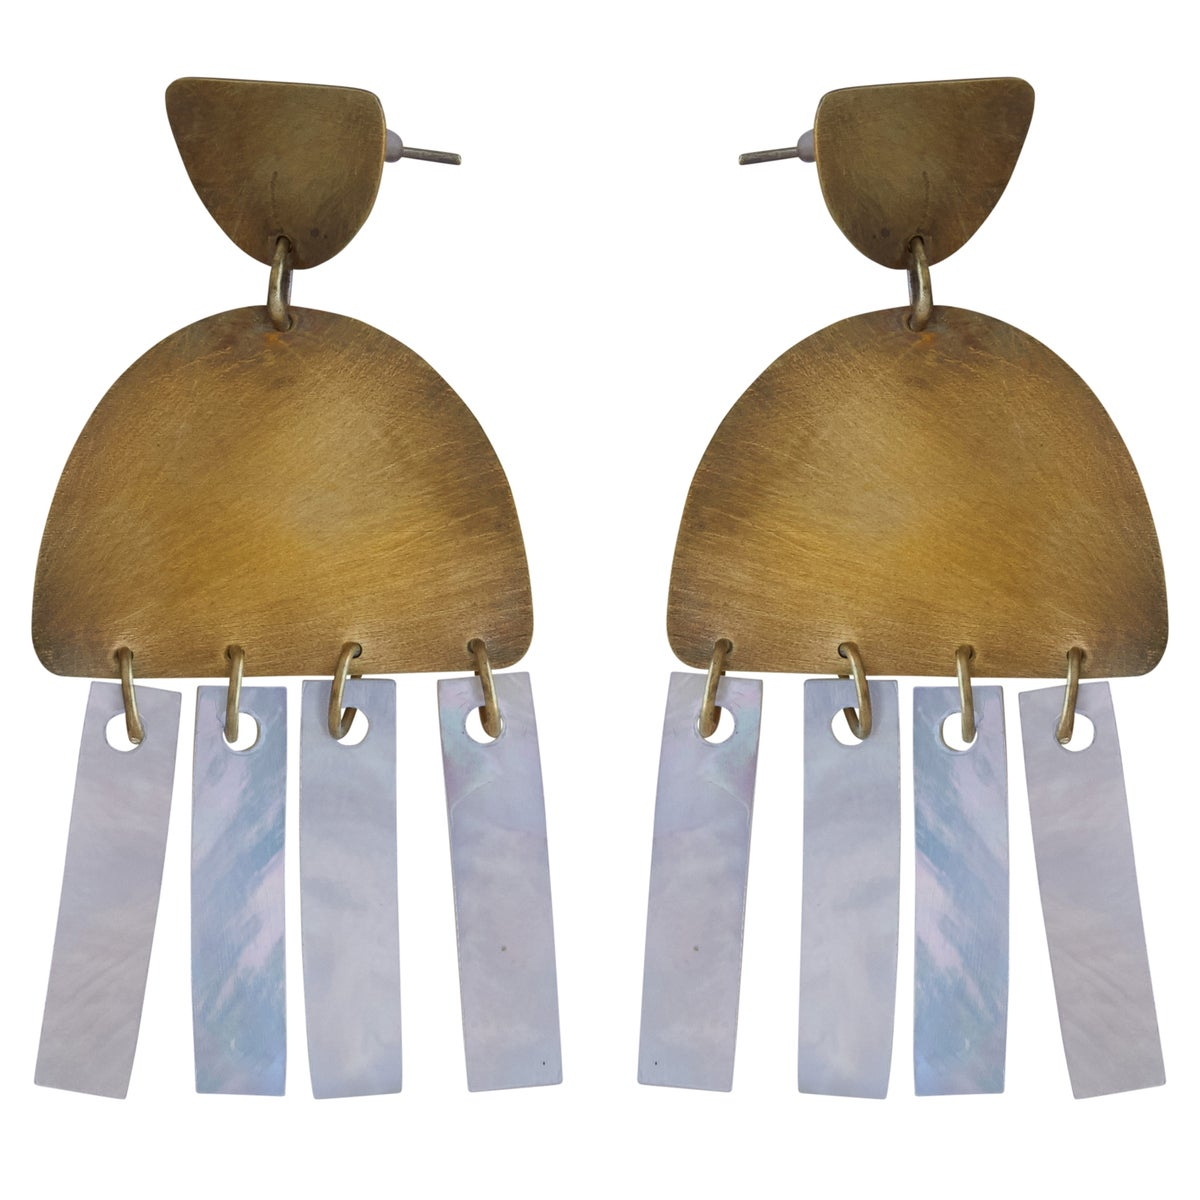 Image of Rio Earrings